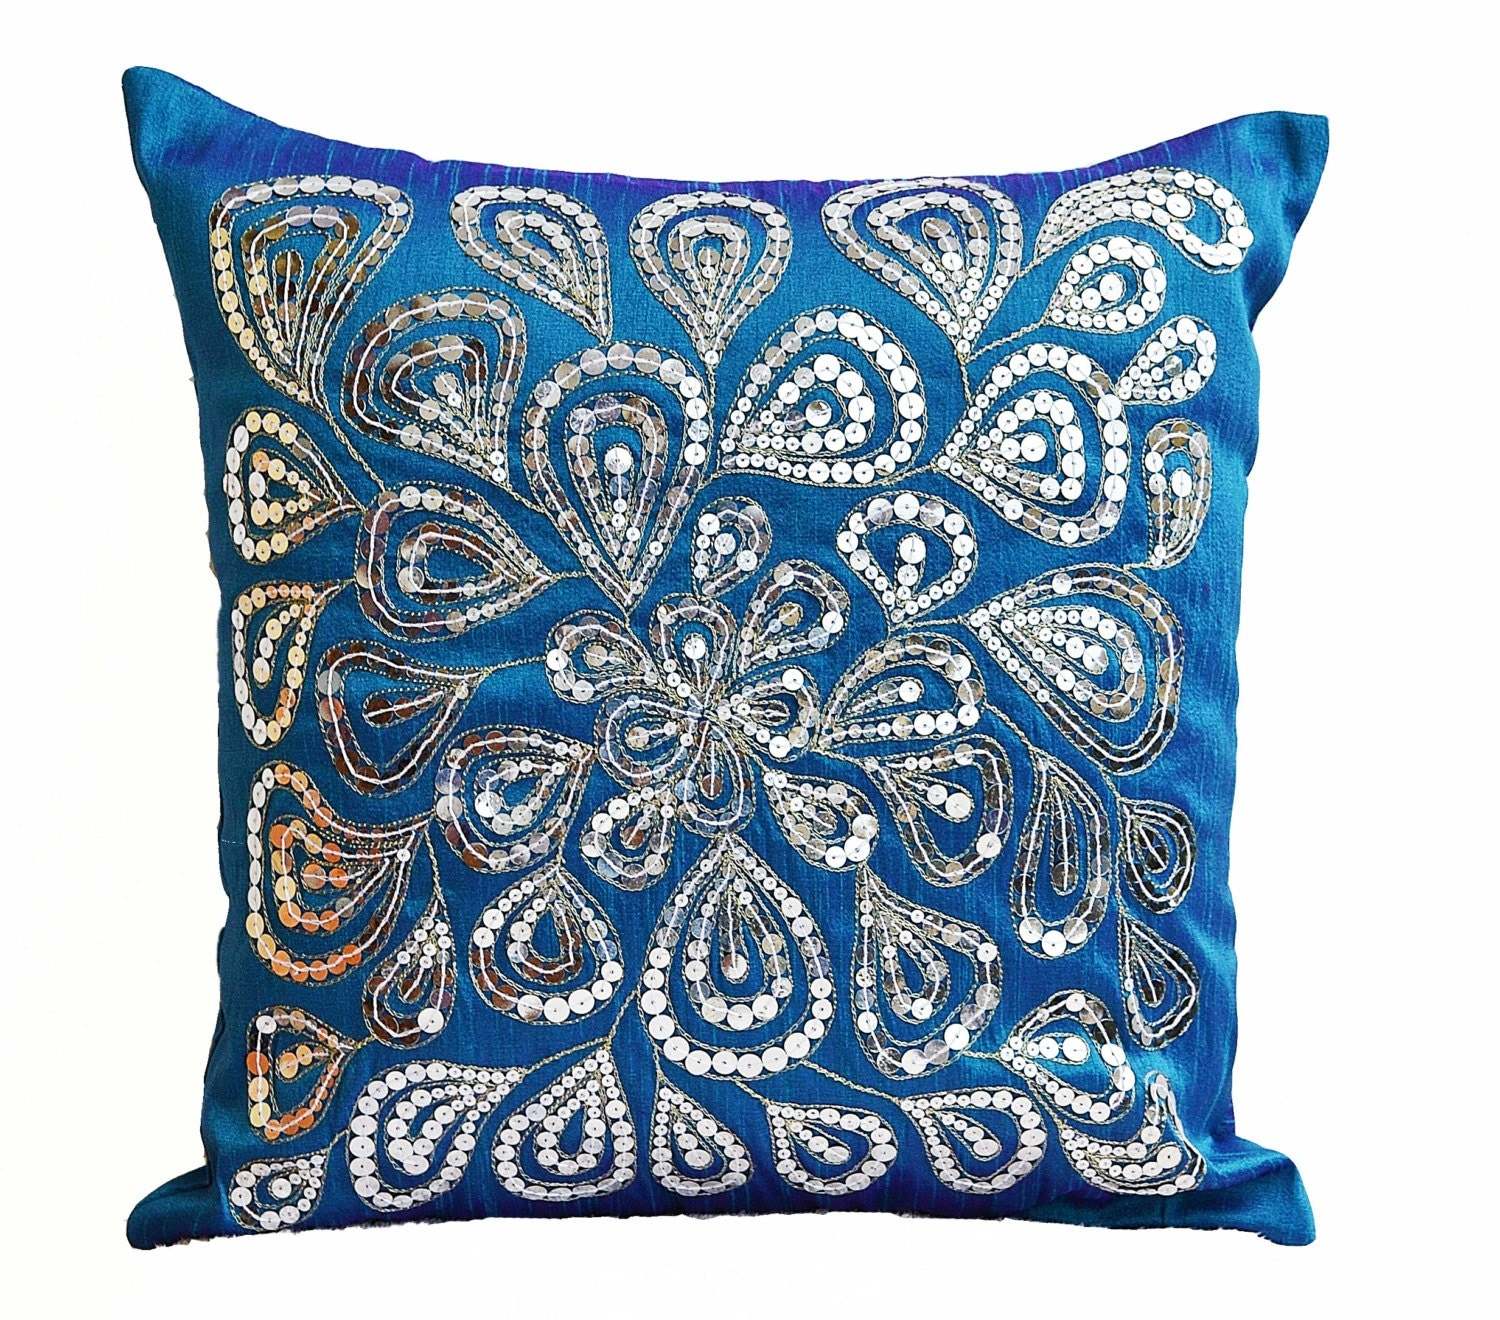 Blue throw pillows with silver sequins Dazzling pillow